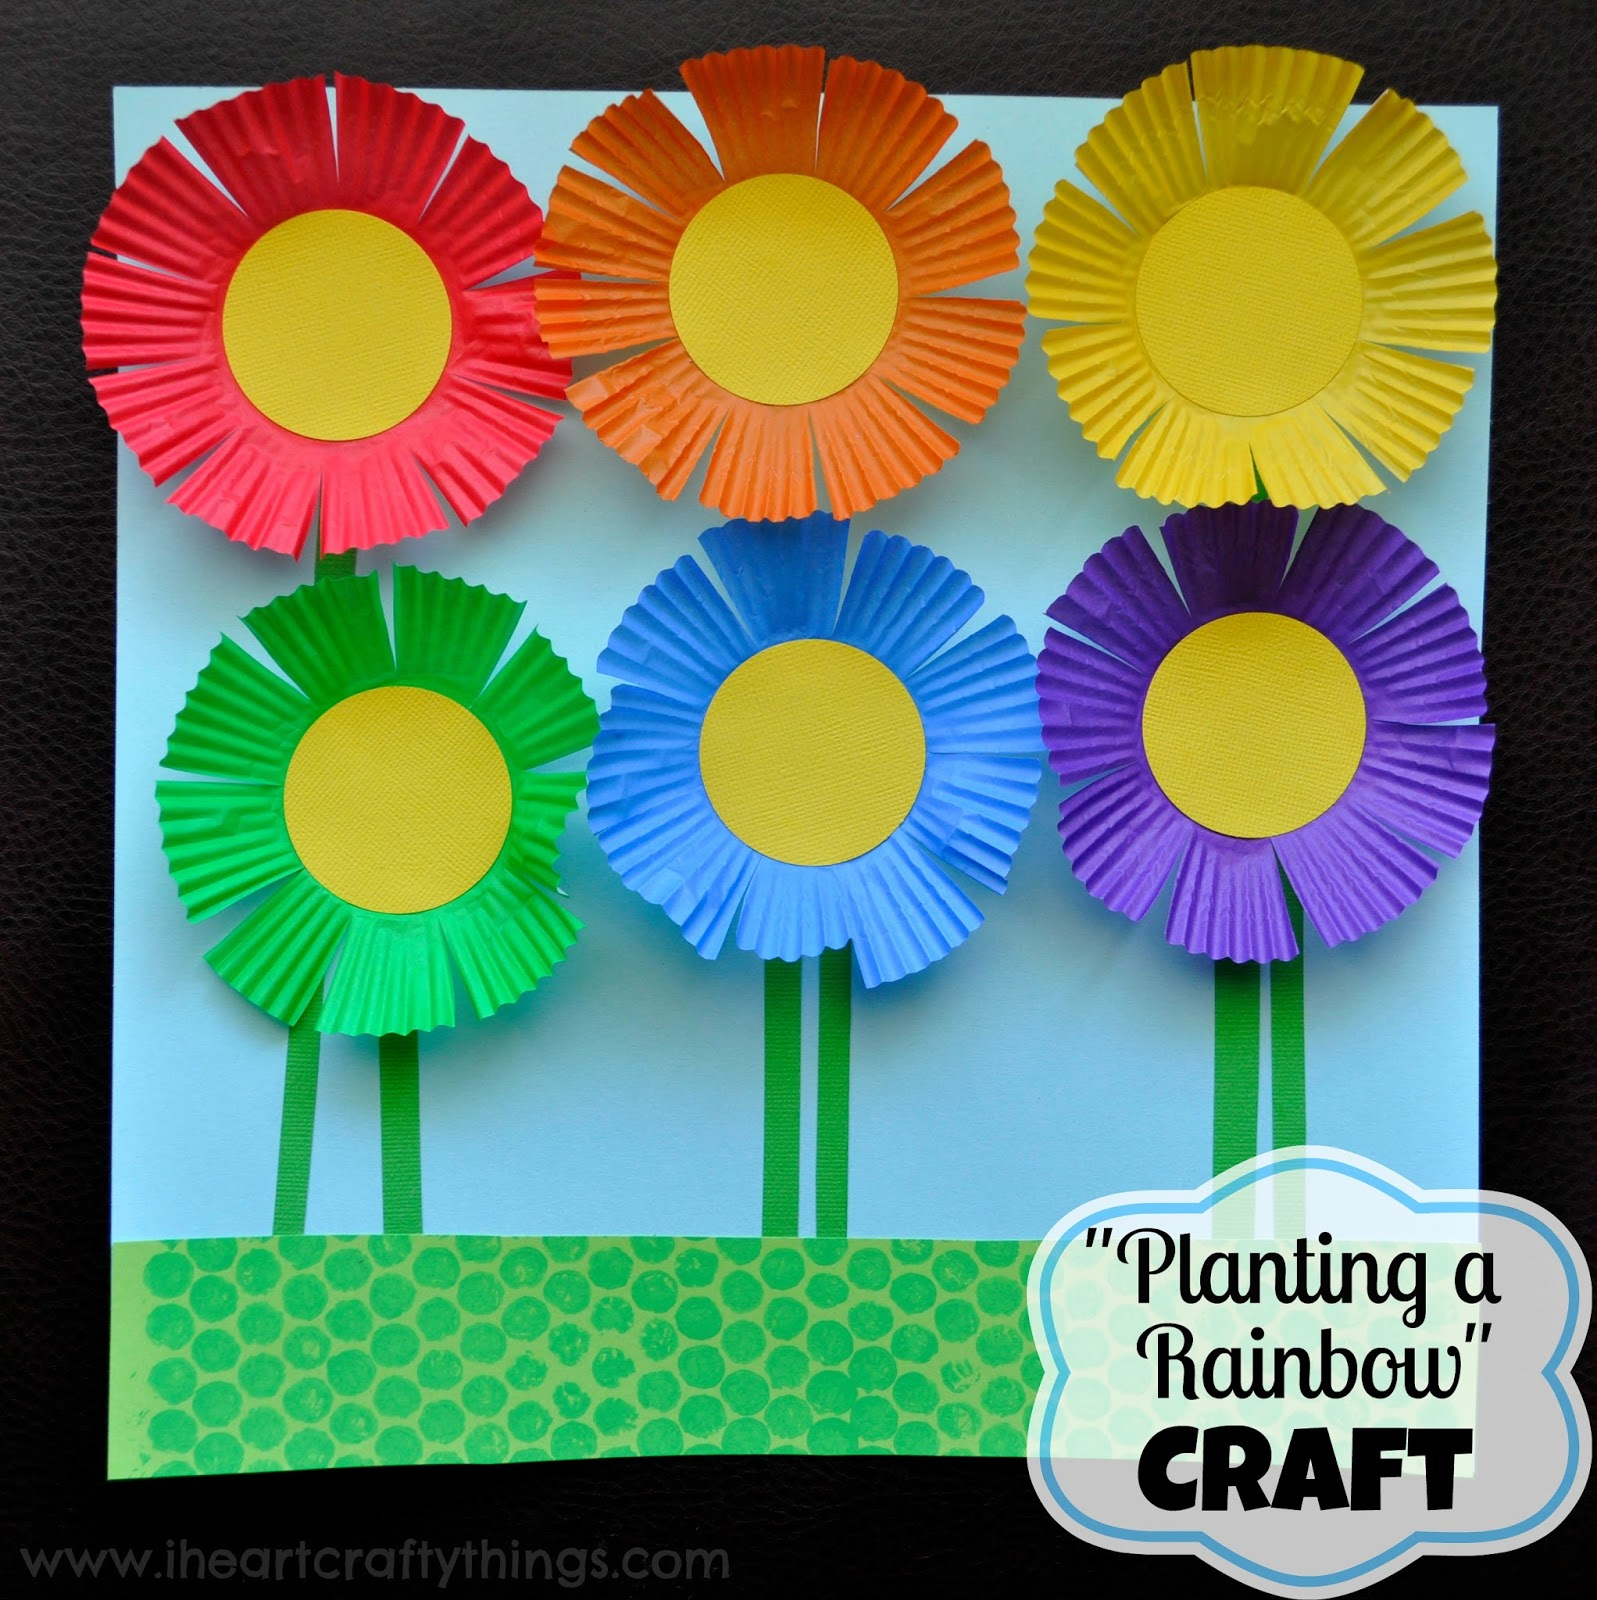 30 flower crafts for kids planting a rainbow flower craft by i heart crafty things mightylinksfo